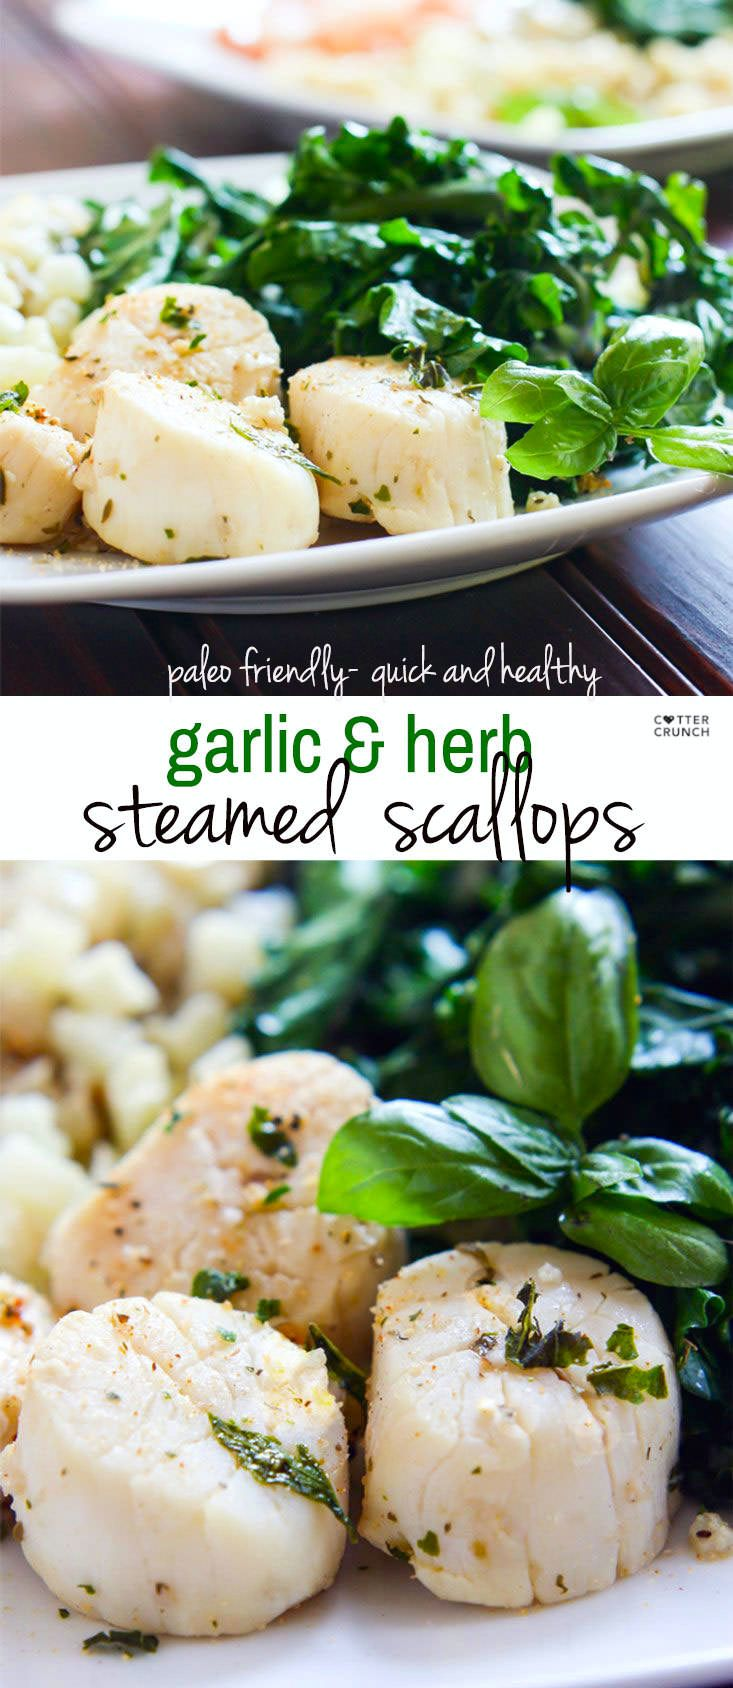 Steamed Garlic Herb Scallops with veggies all cooked in ONE POT! Cooking Scallops can seem intimating for some, but this paleo friendly dish is ready in 10 minutes and is SUPER easy to make. A Healthy Light meal for one or more!